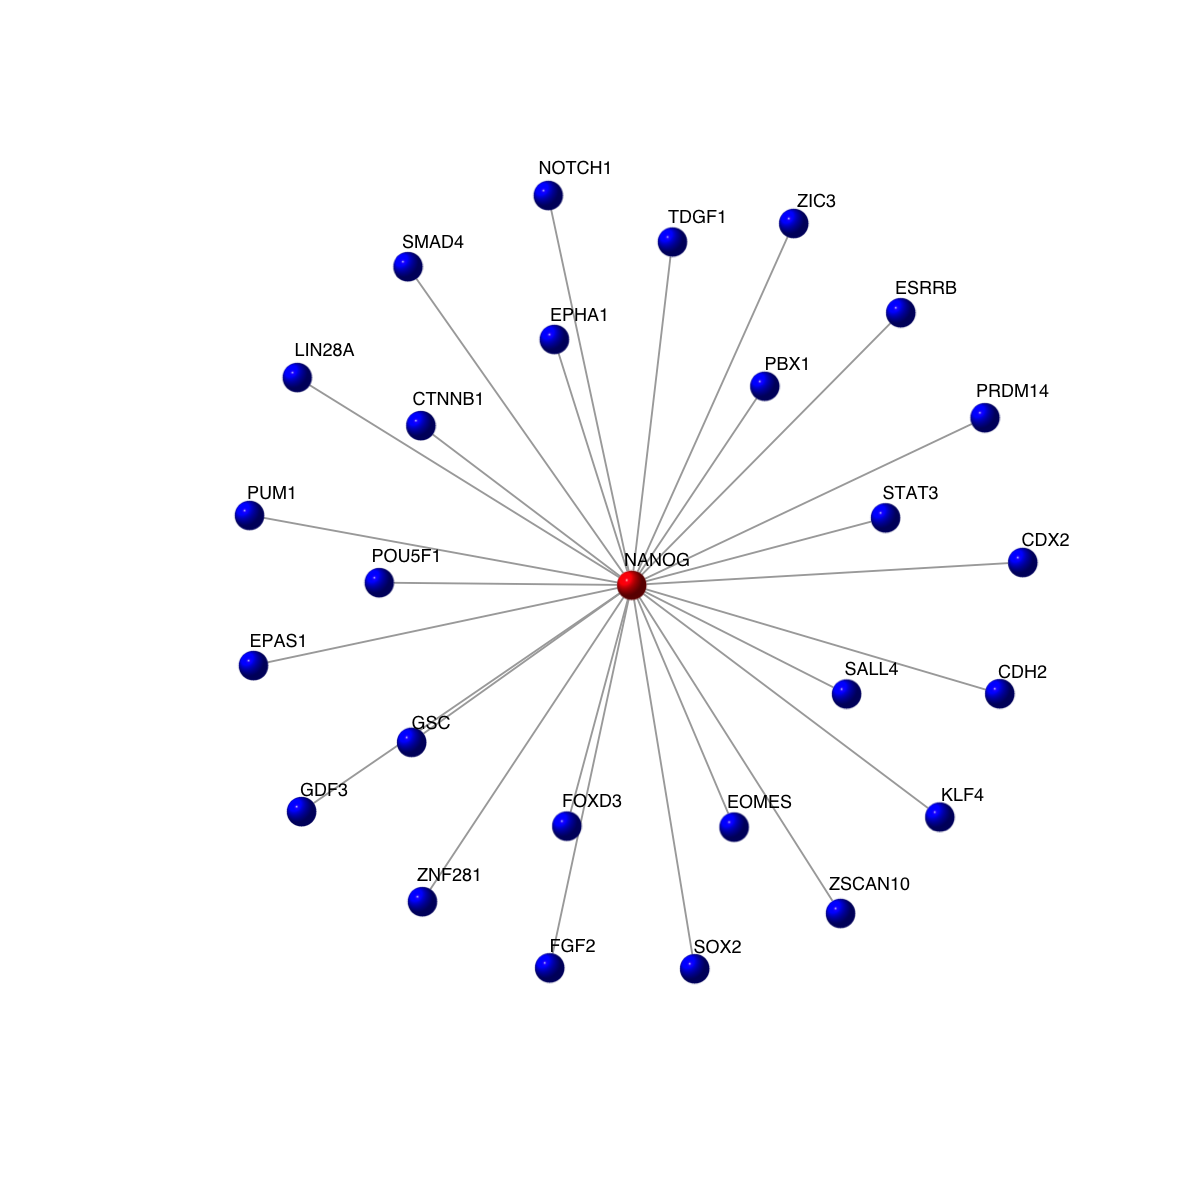 How to extract a subnetwork that revolves around a specific